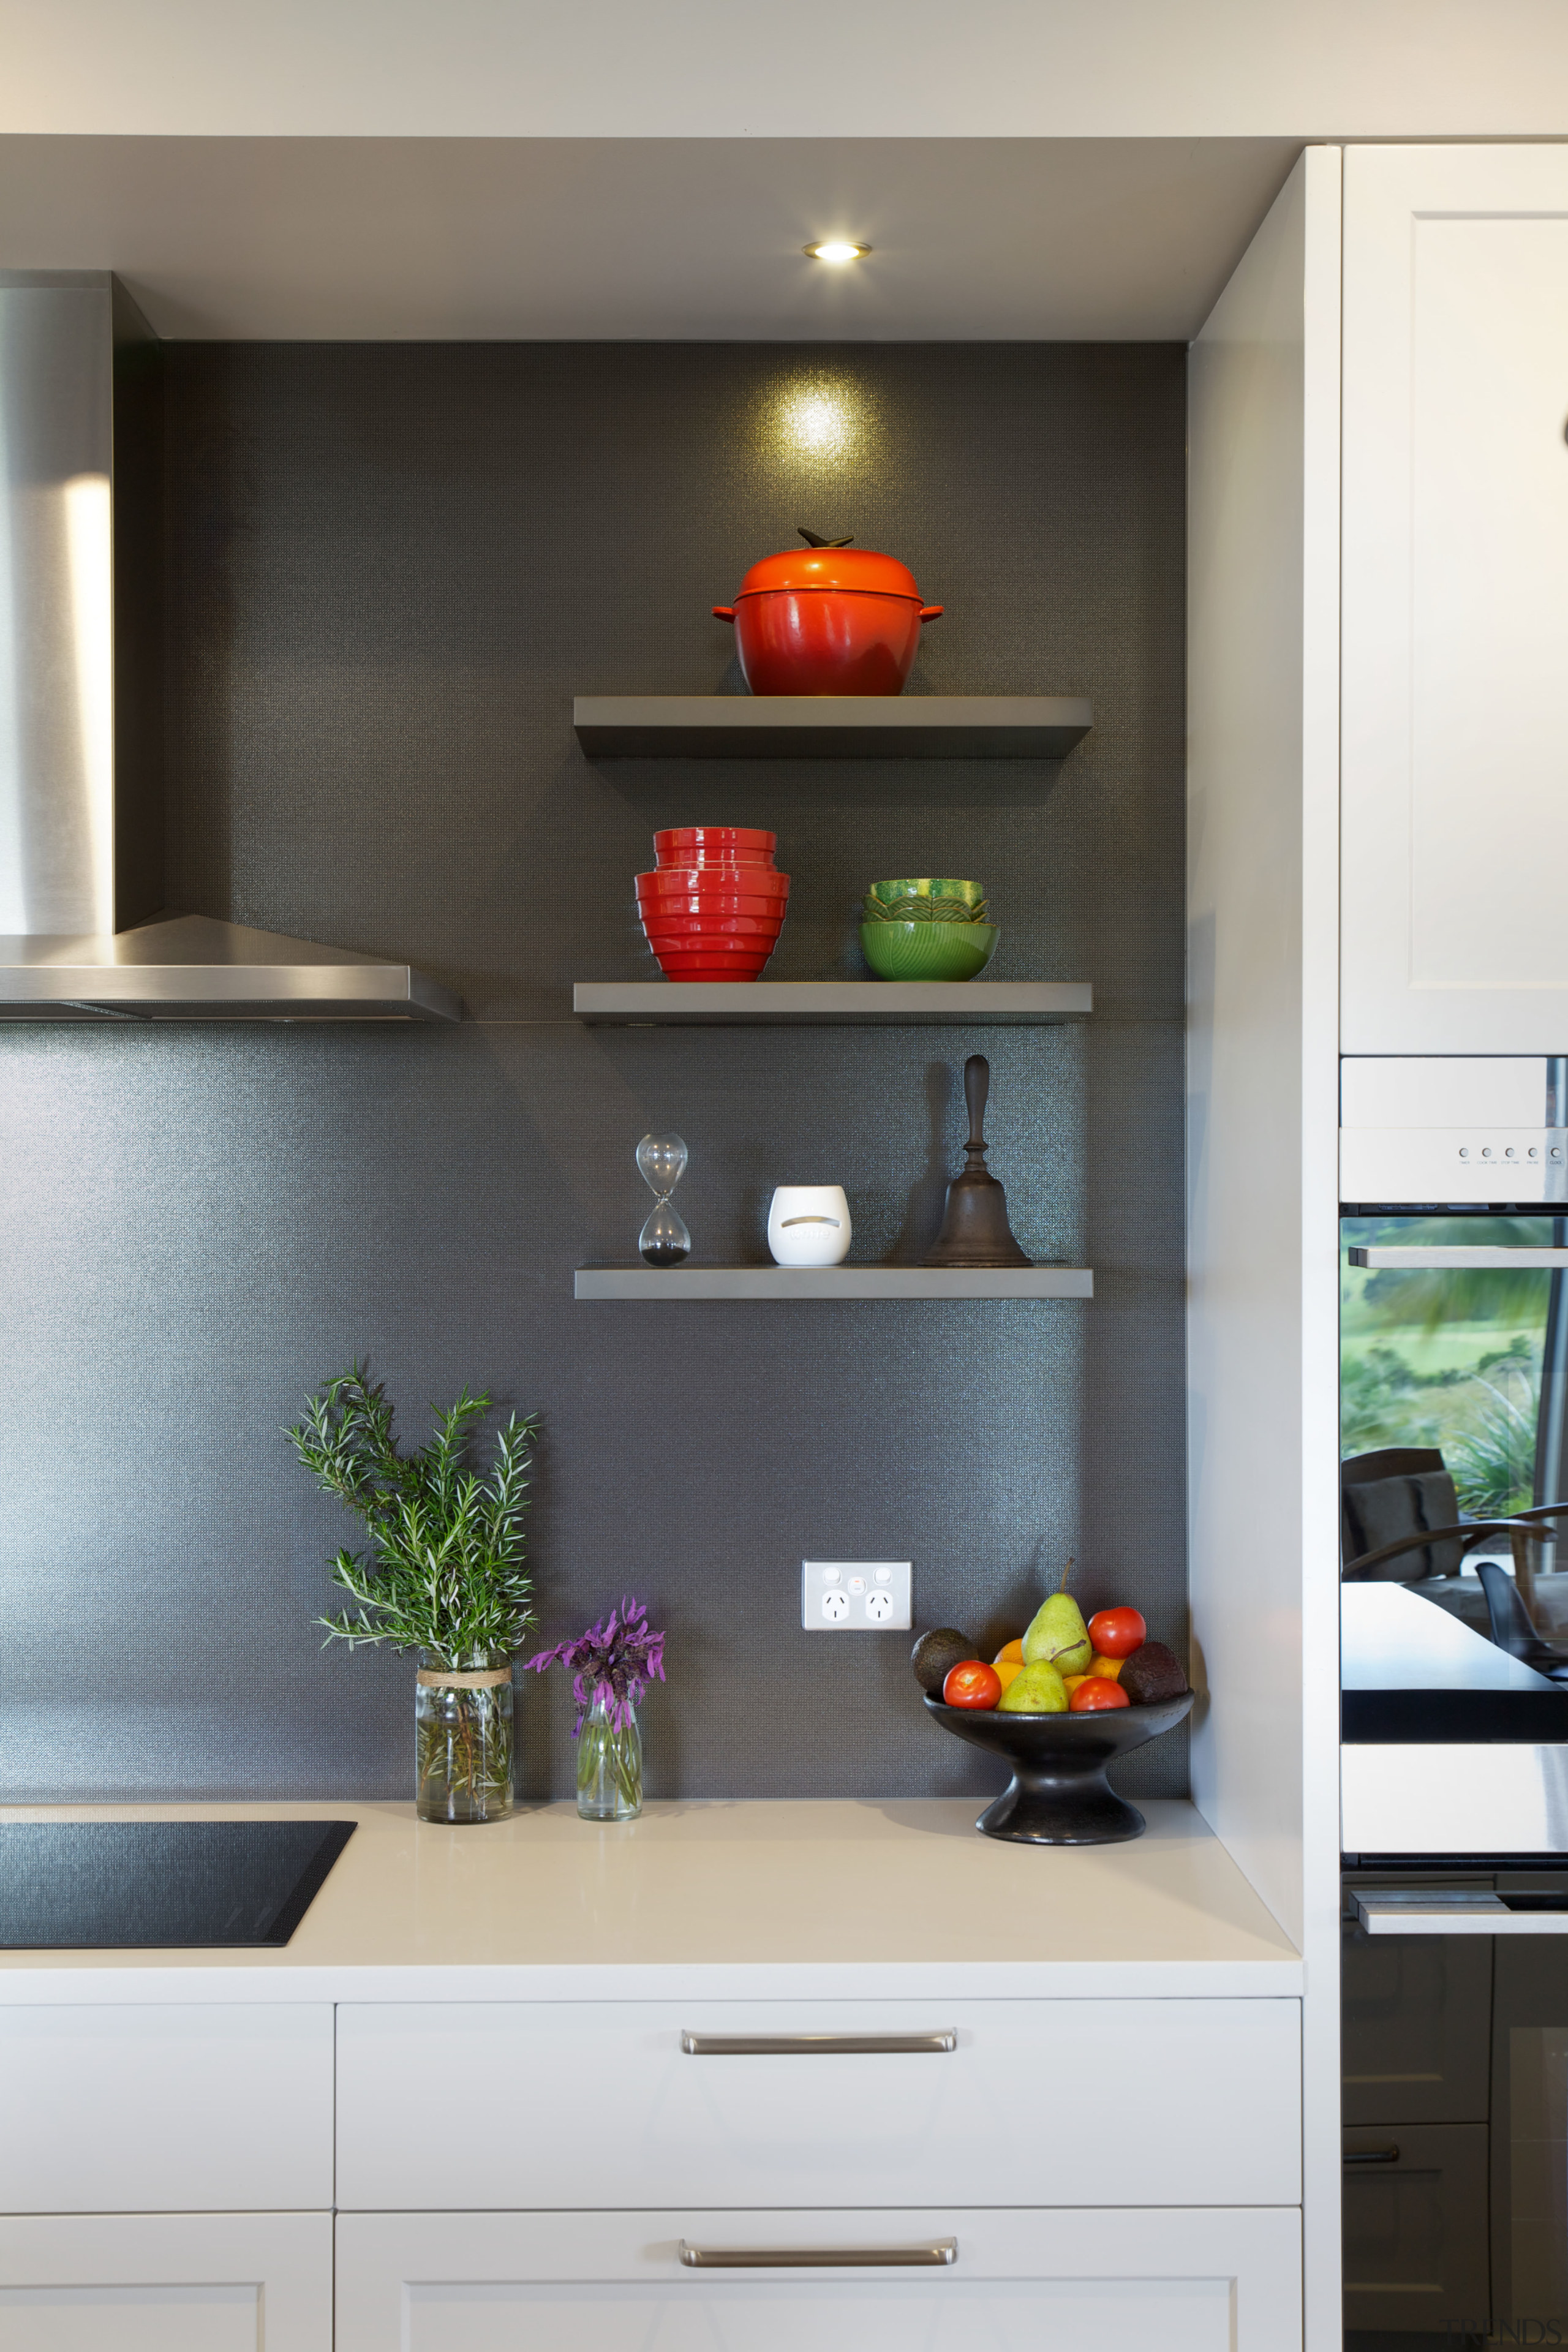 These floating shelves are a place for the cabinetry, countertop, home appliance, interior design, kitchen, room, shelf, white, black, gray